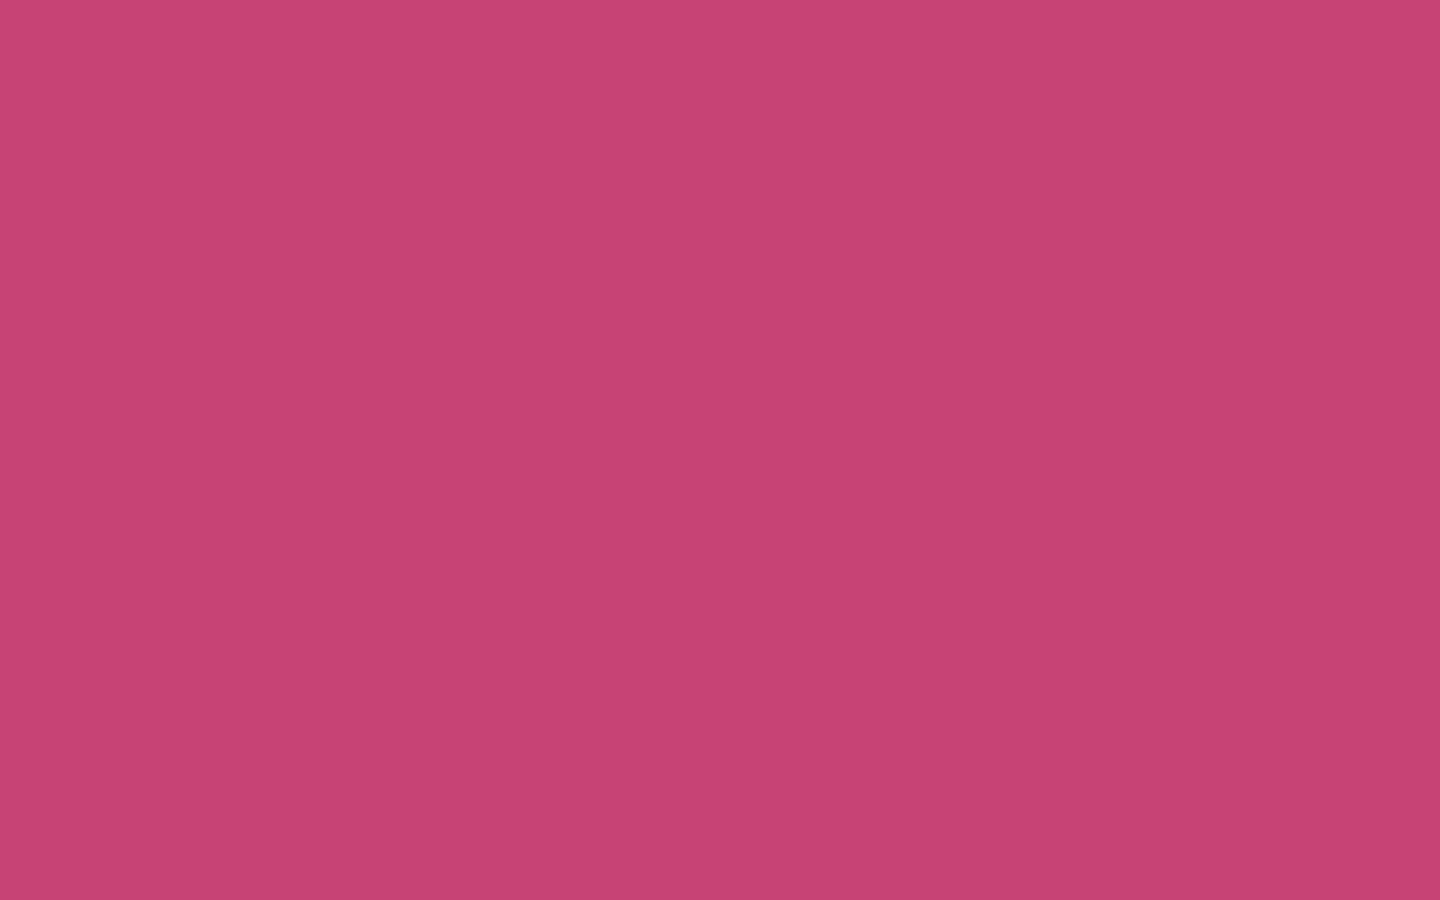 1440x900 Fuchsia Rose Solid Color Background